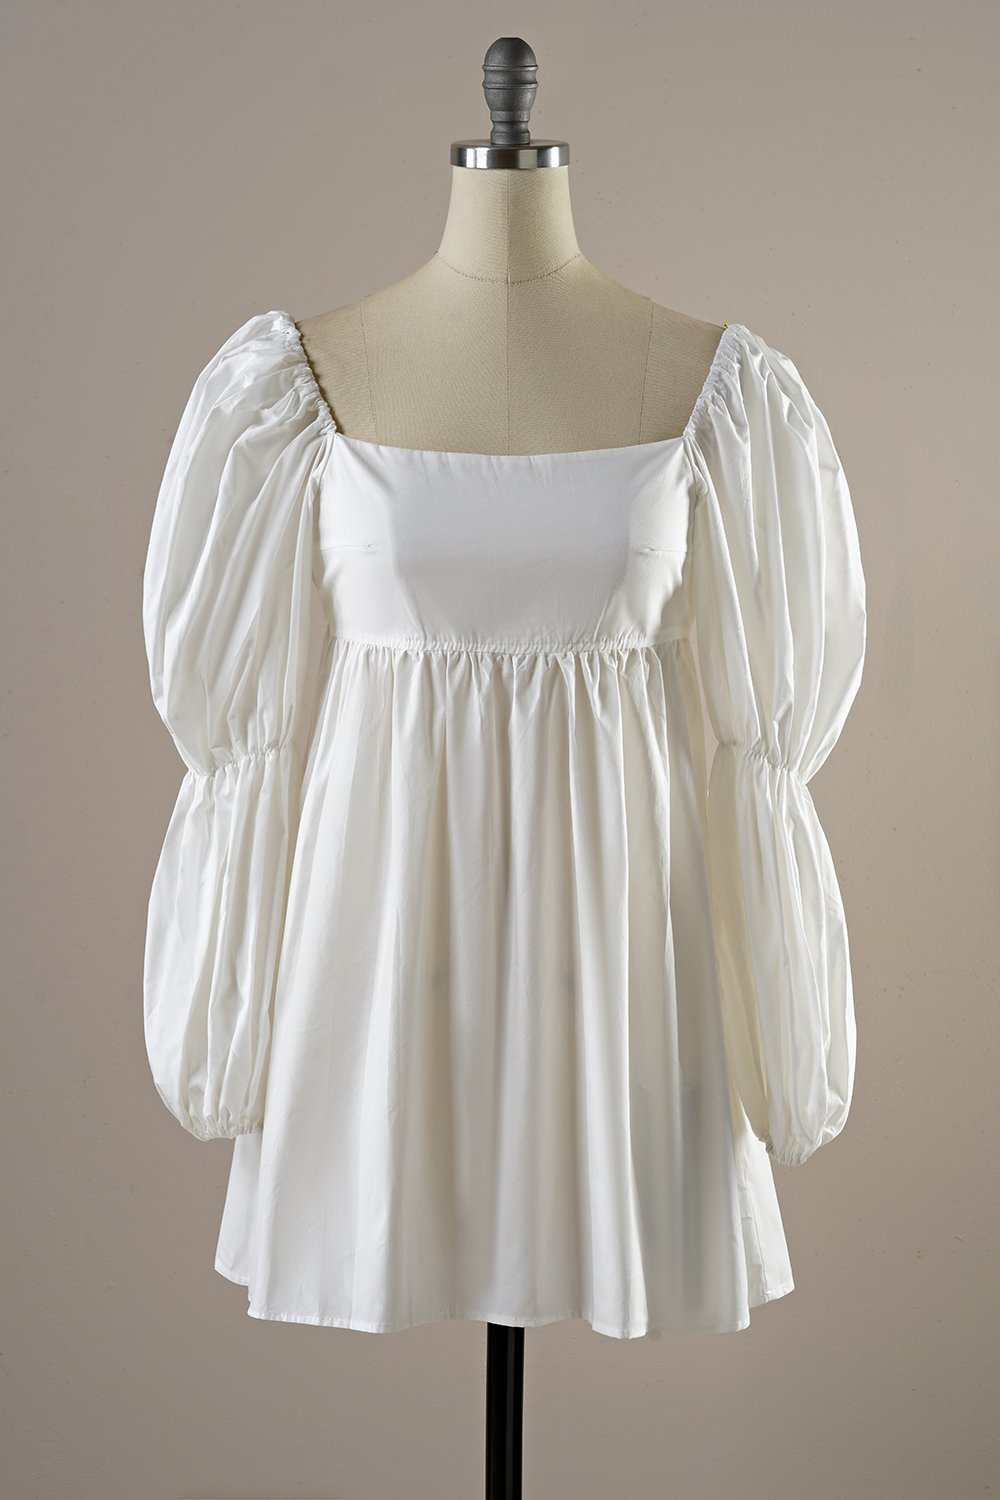 White Vintage Mini Dress